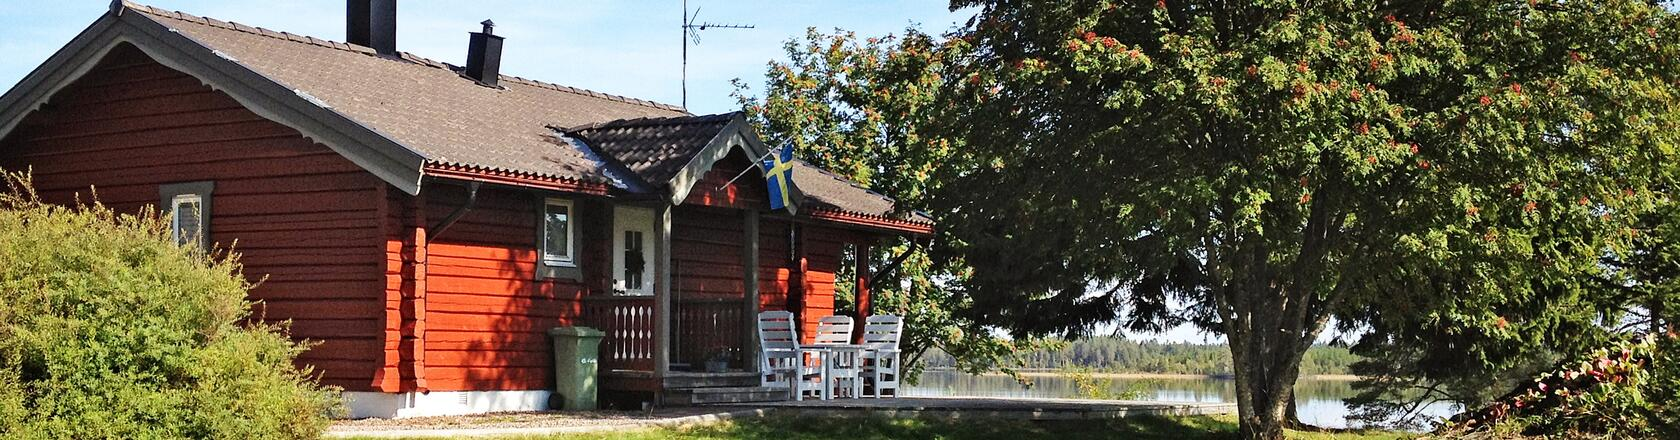 Sörsjön in Sweden — Rent a holiday home with DanCenter